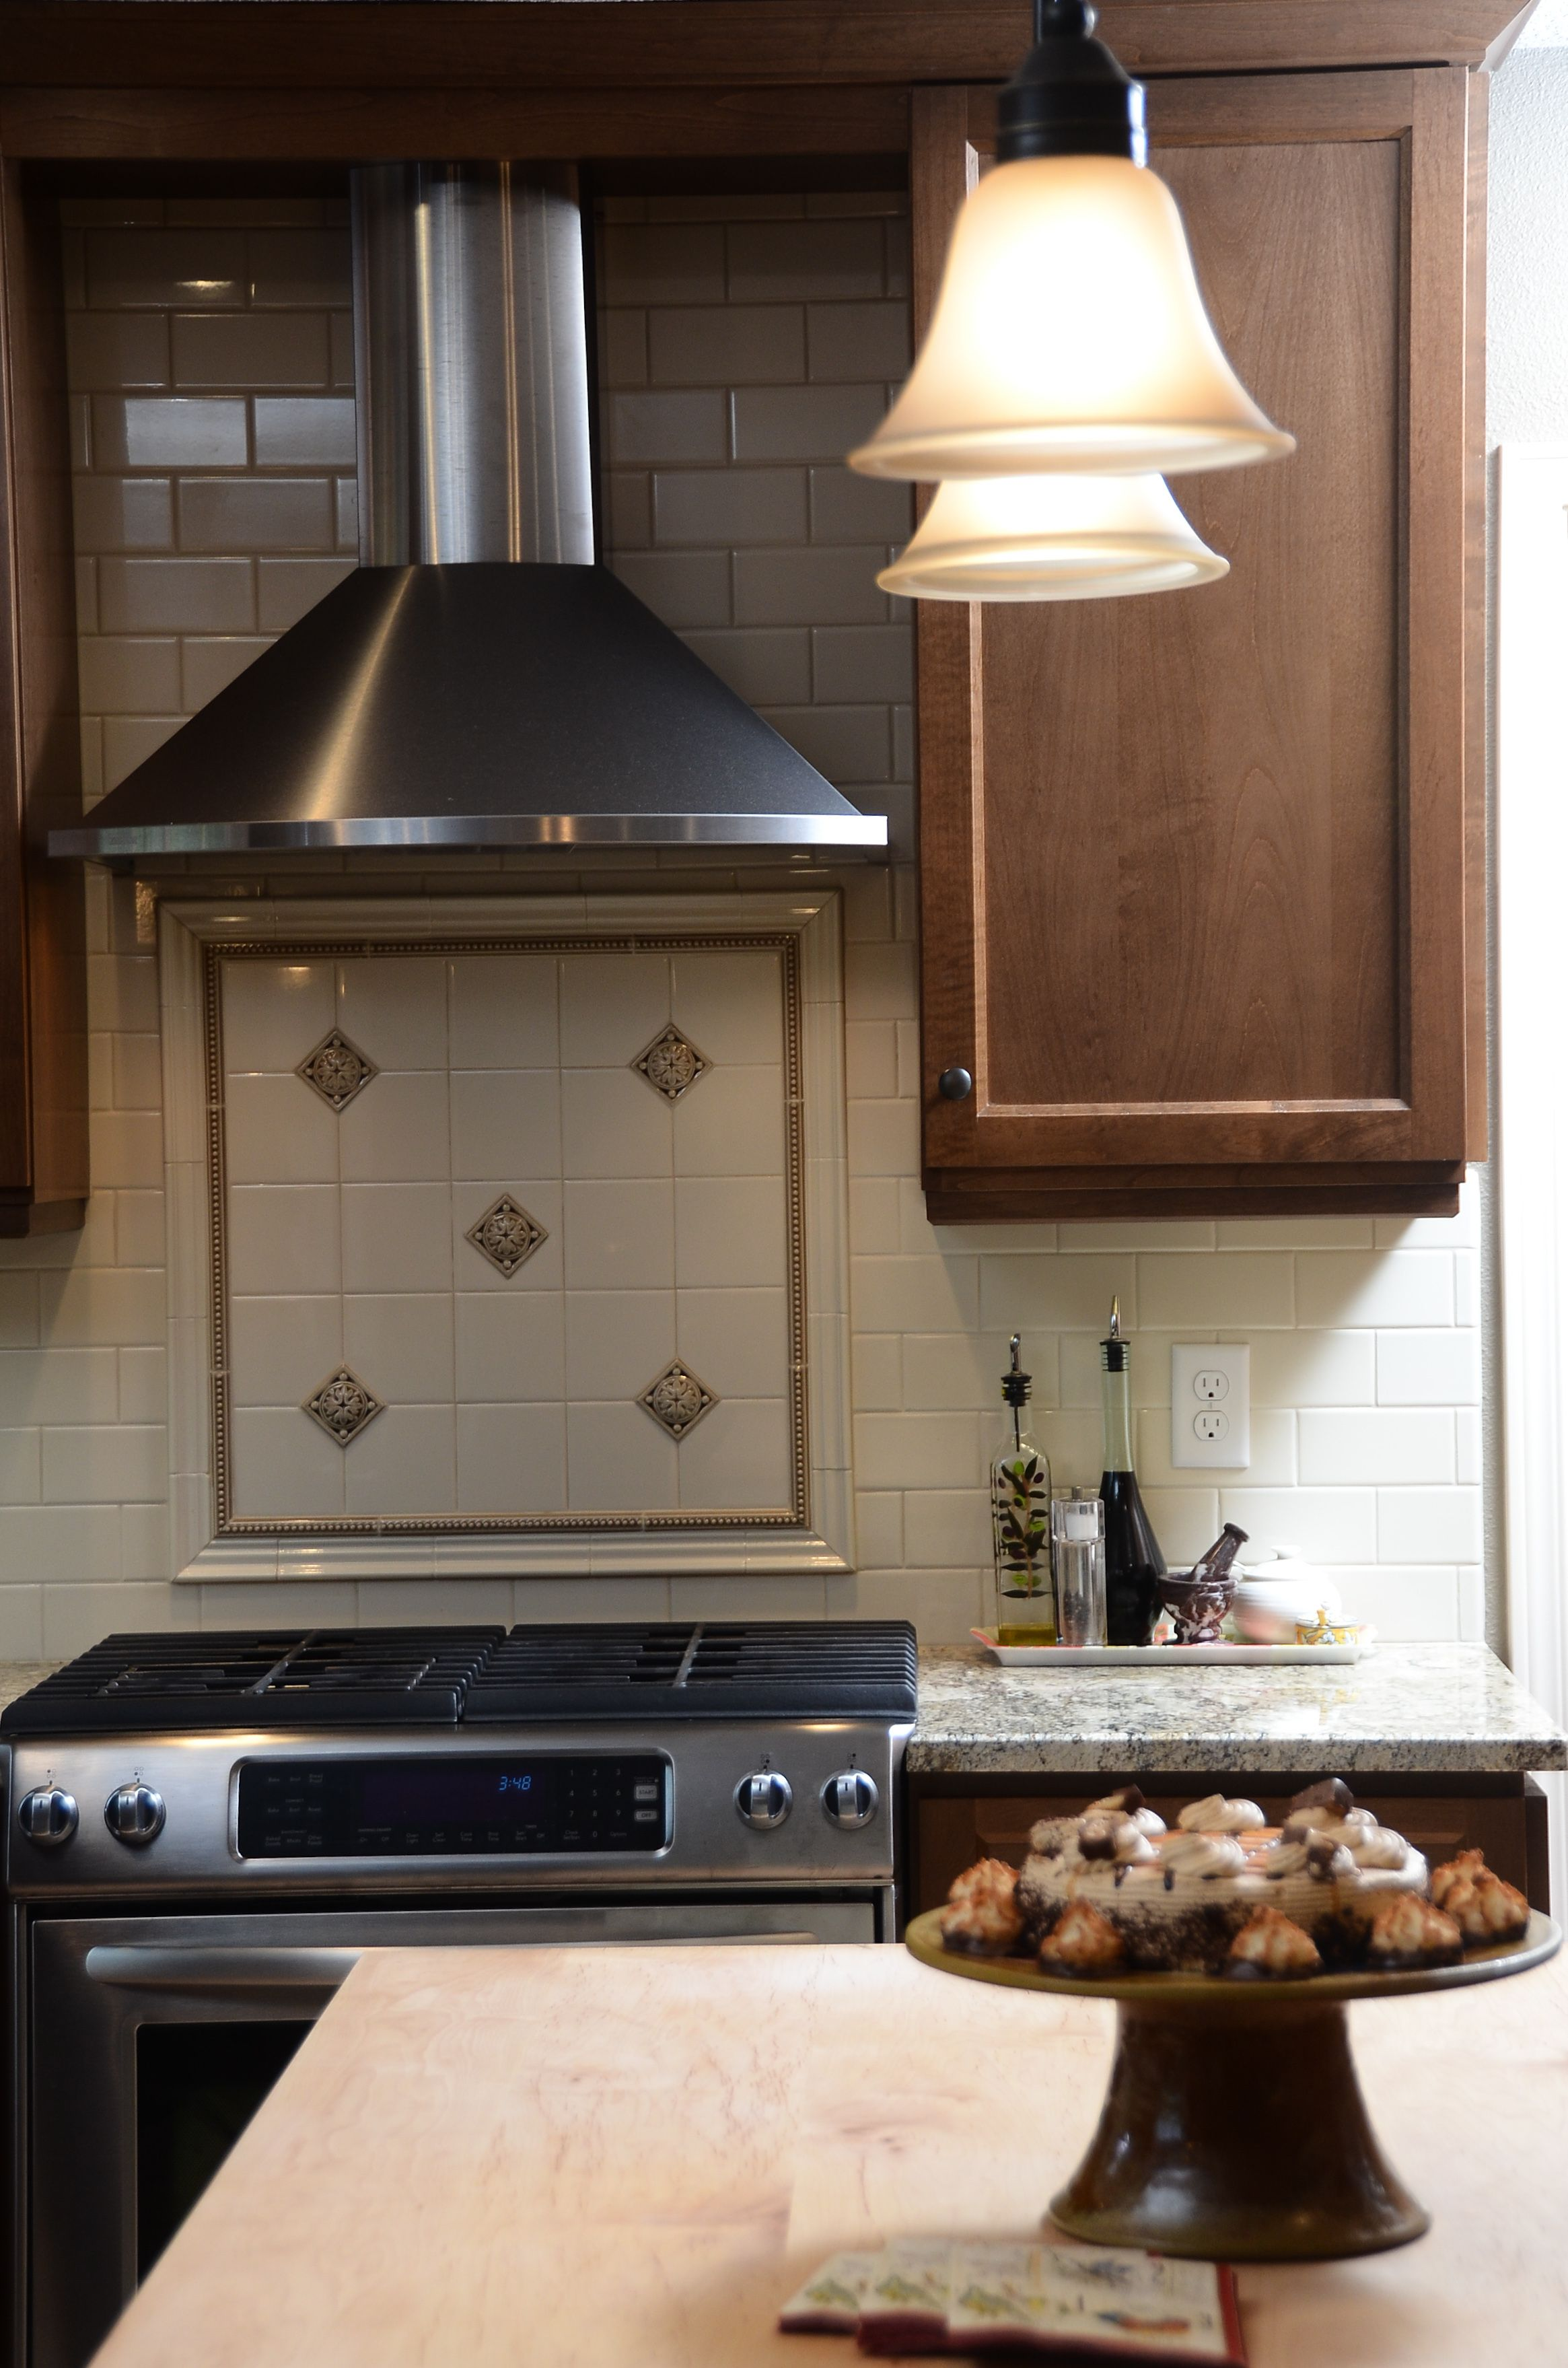 Subway Tile Backsplash With Square Tile Rug Behind Range With